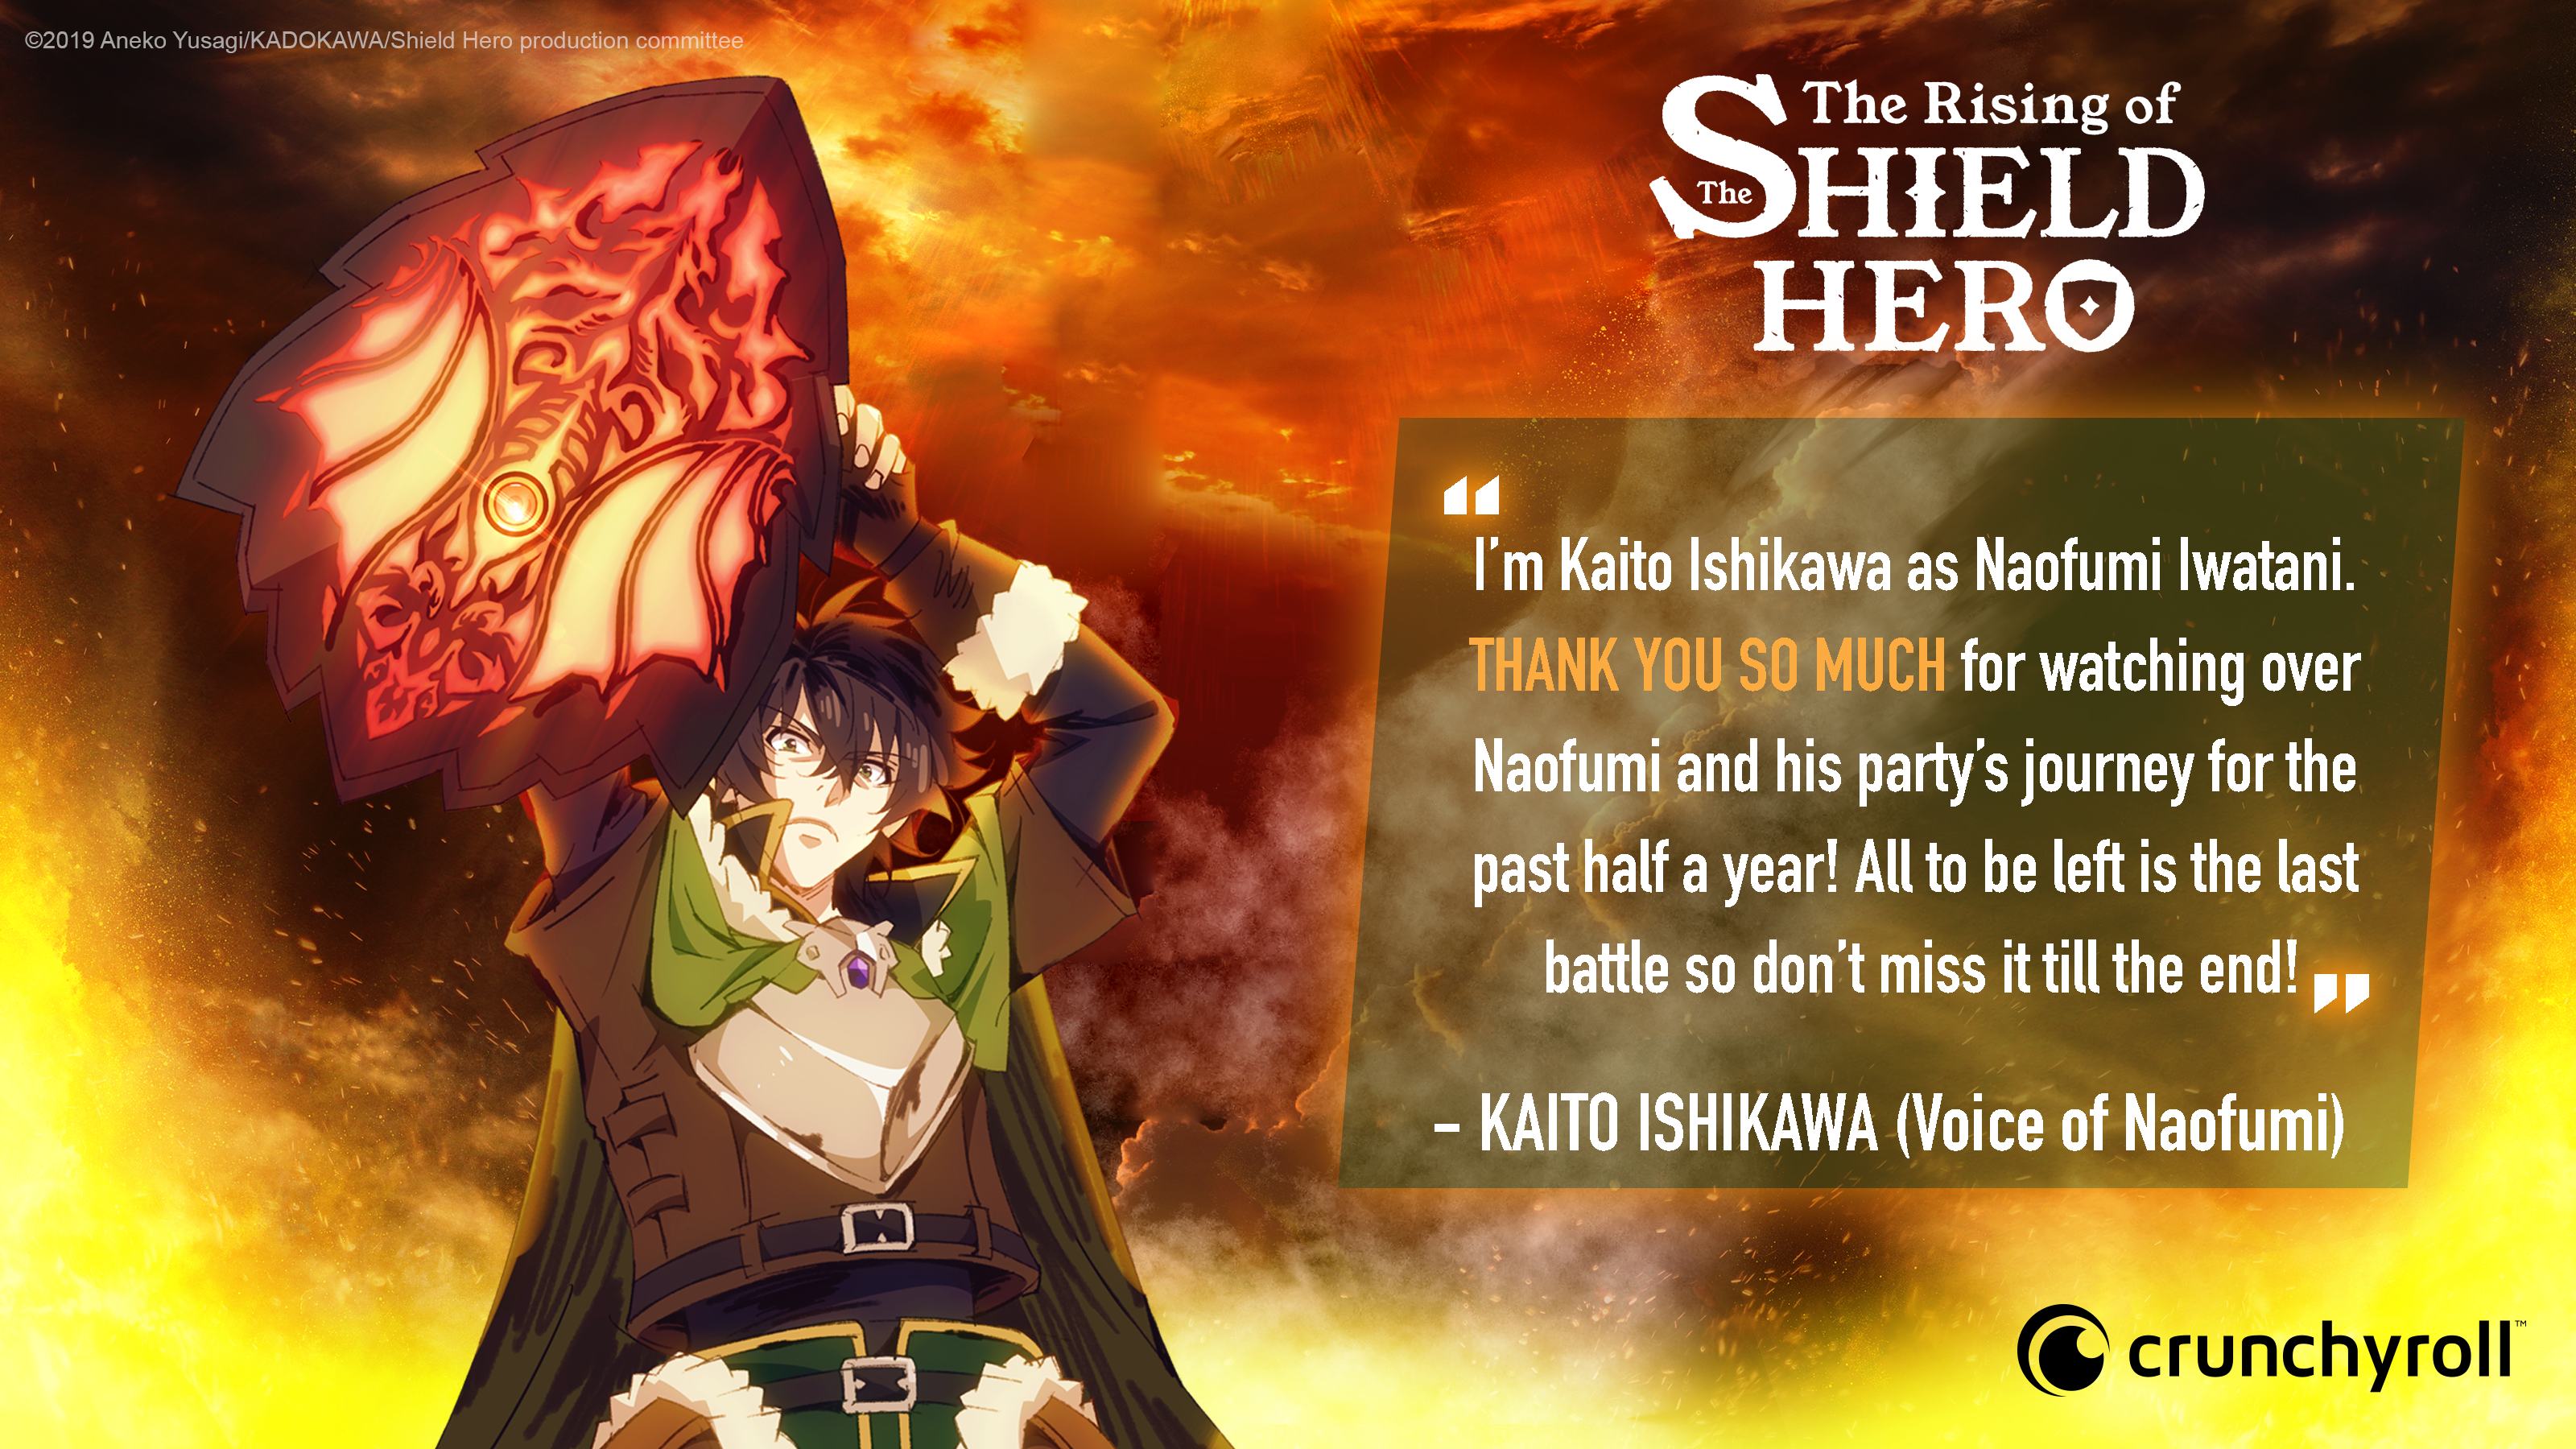 Crunchyroll Shield Hero Cast Thanks Fans For Watching Over